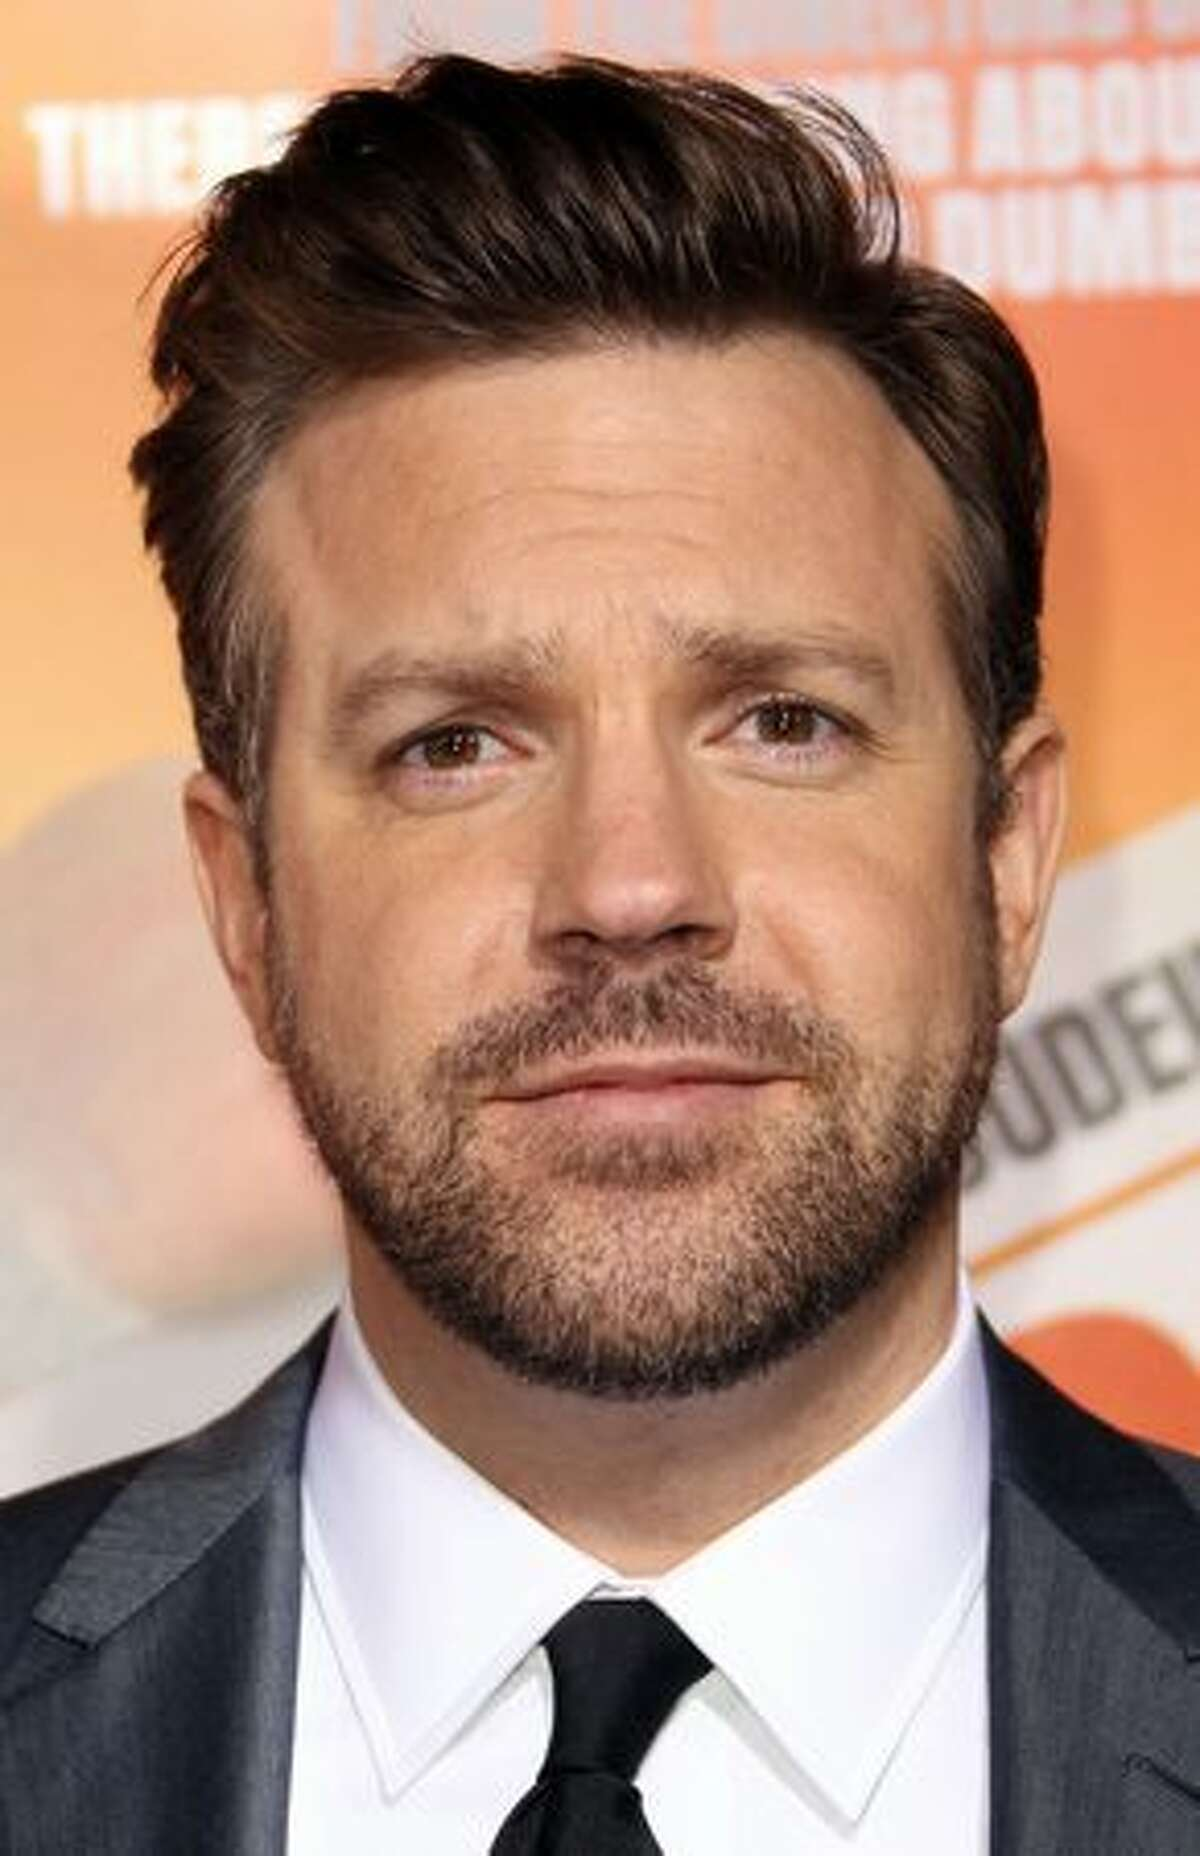 """Actor Jason Sudeikis attends the premiere of Warner Brothers' """"Hall Pass"""" at the Cinerama Dome in Los Angeles, California."""